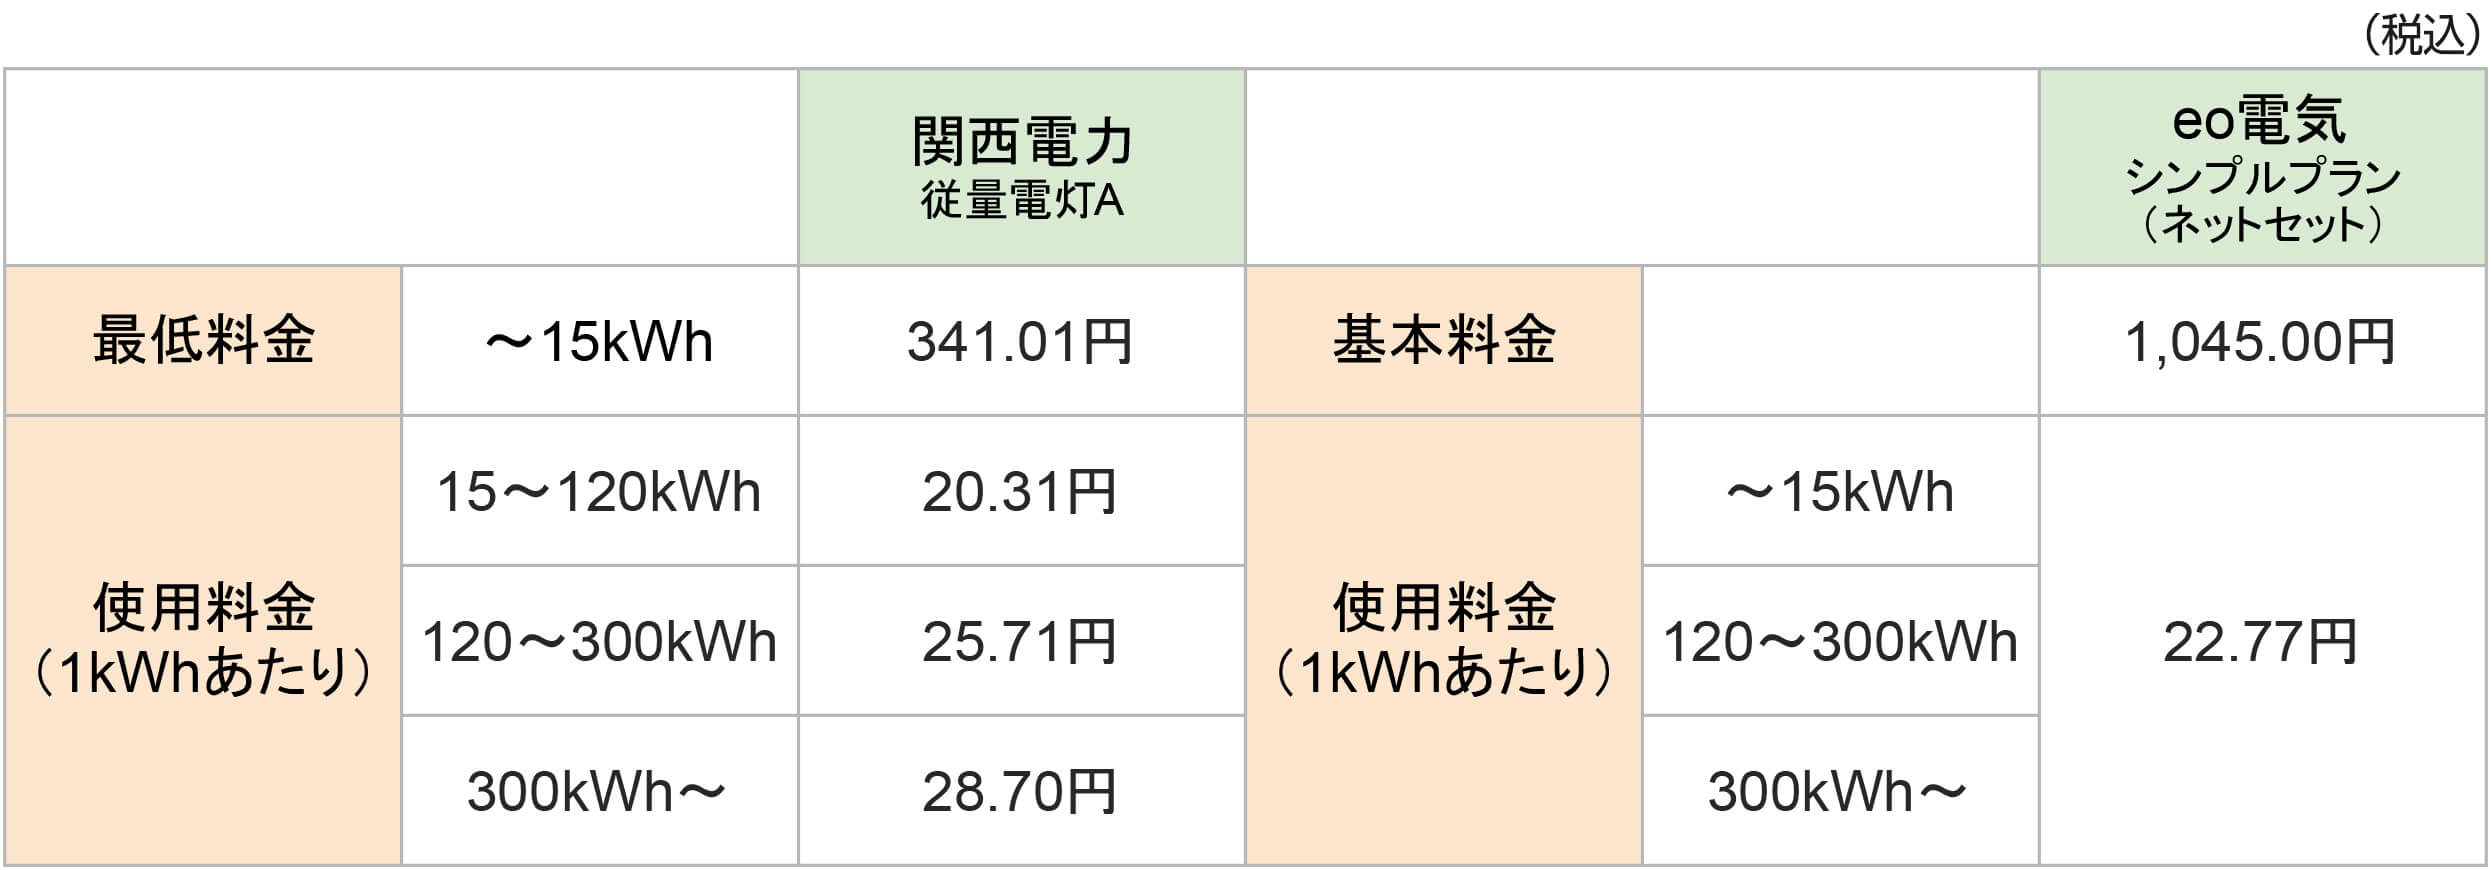 eo電気と関西電力の料金プラン